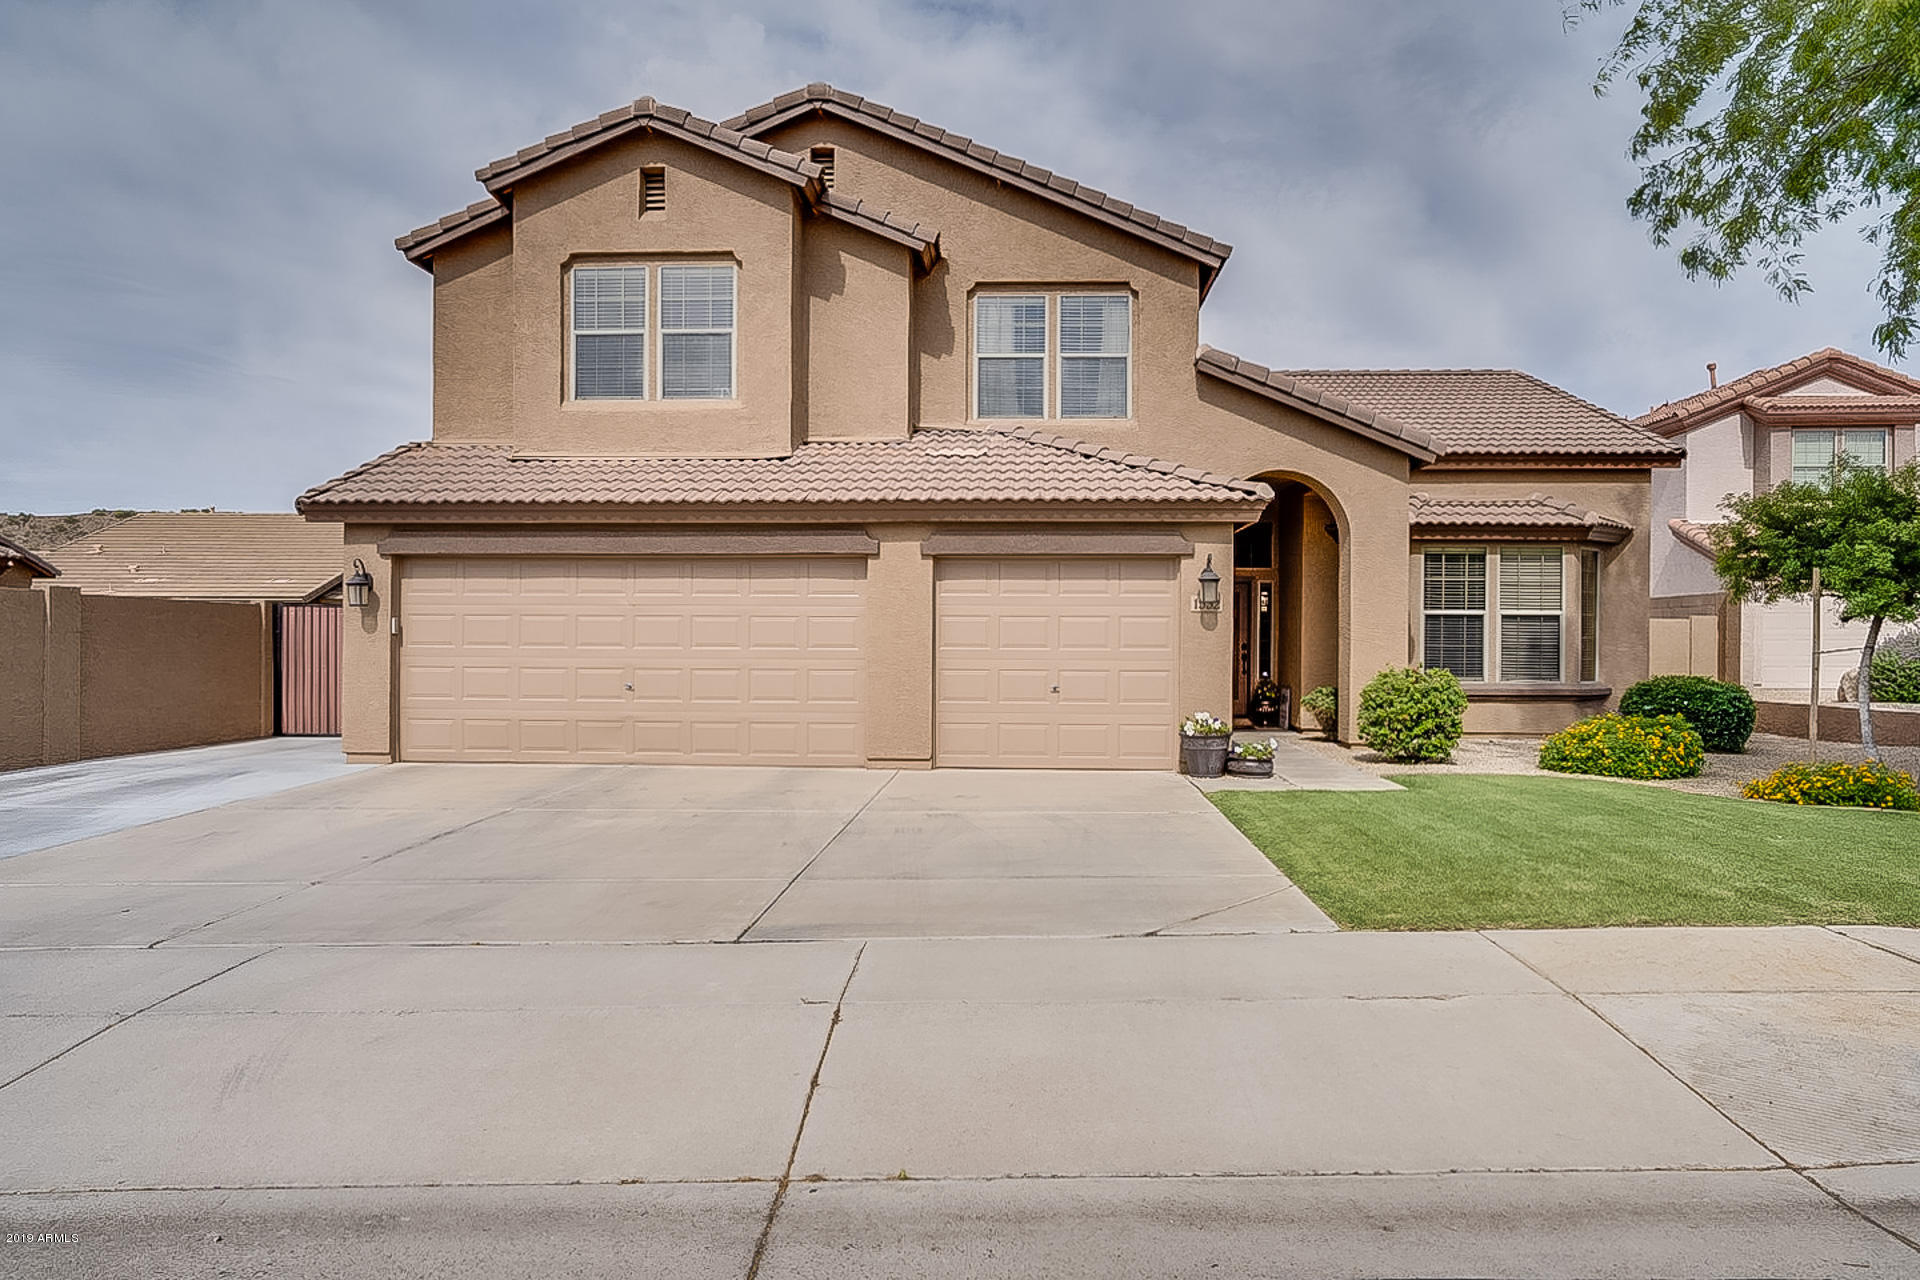 Photo of 1532 N SIERRA HEIGHTS Circle, Mesa, AZ 85207